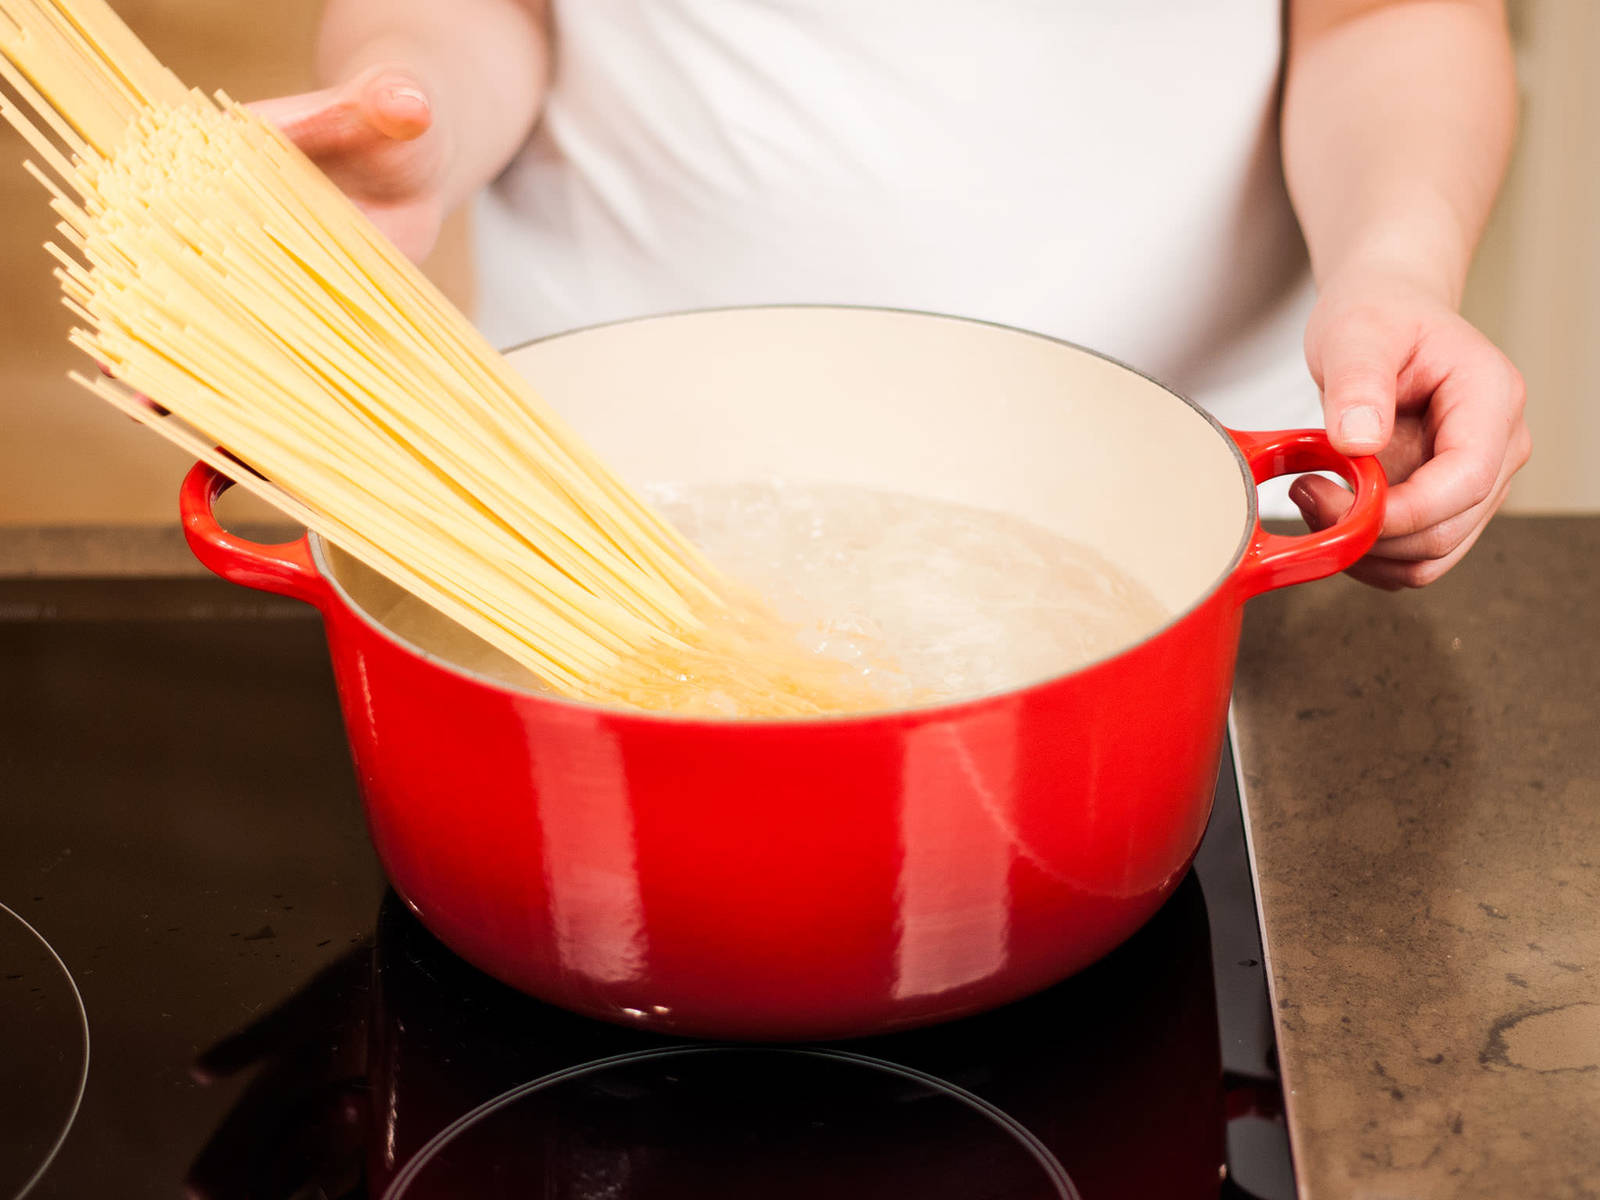 In the meantime, cook pasta in plenty of salted boiling water according to package instructions for approx. 10 - 12 min. until al dente. Drain, top with sauce, and serve with grated Parmesan.